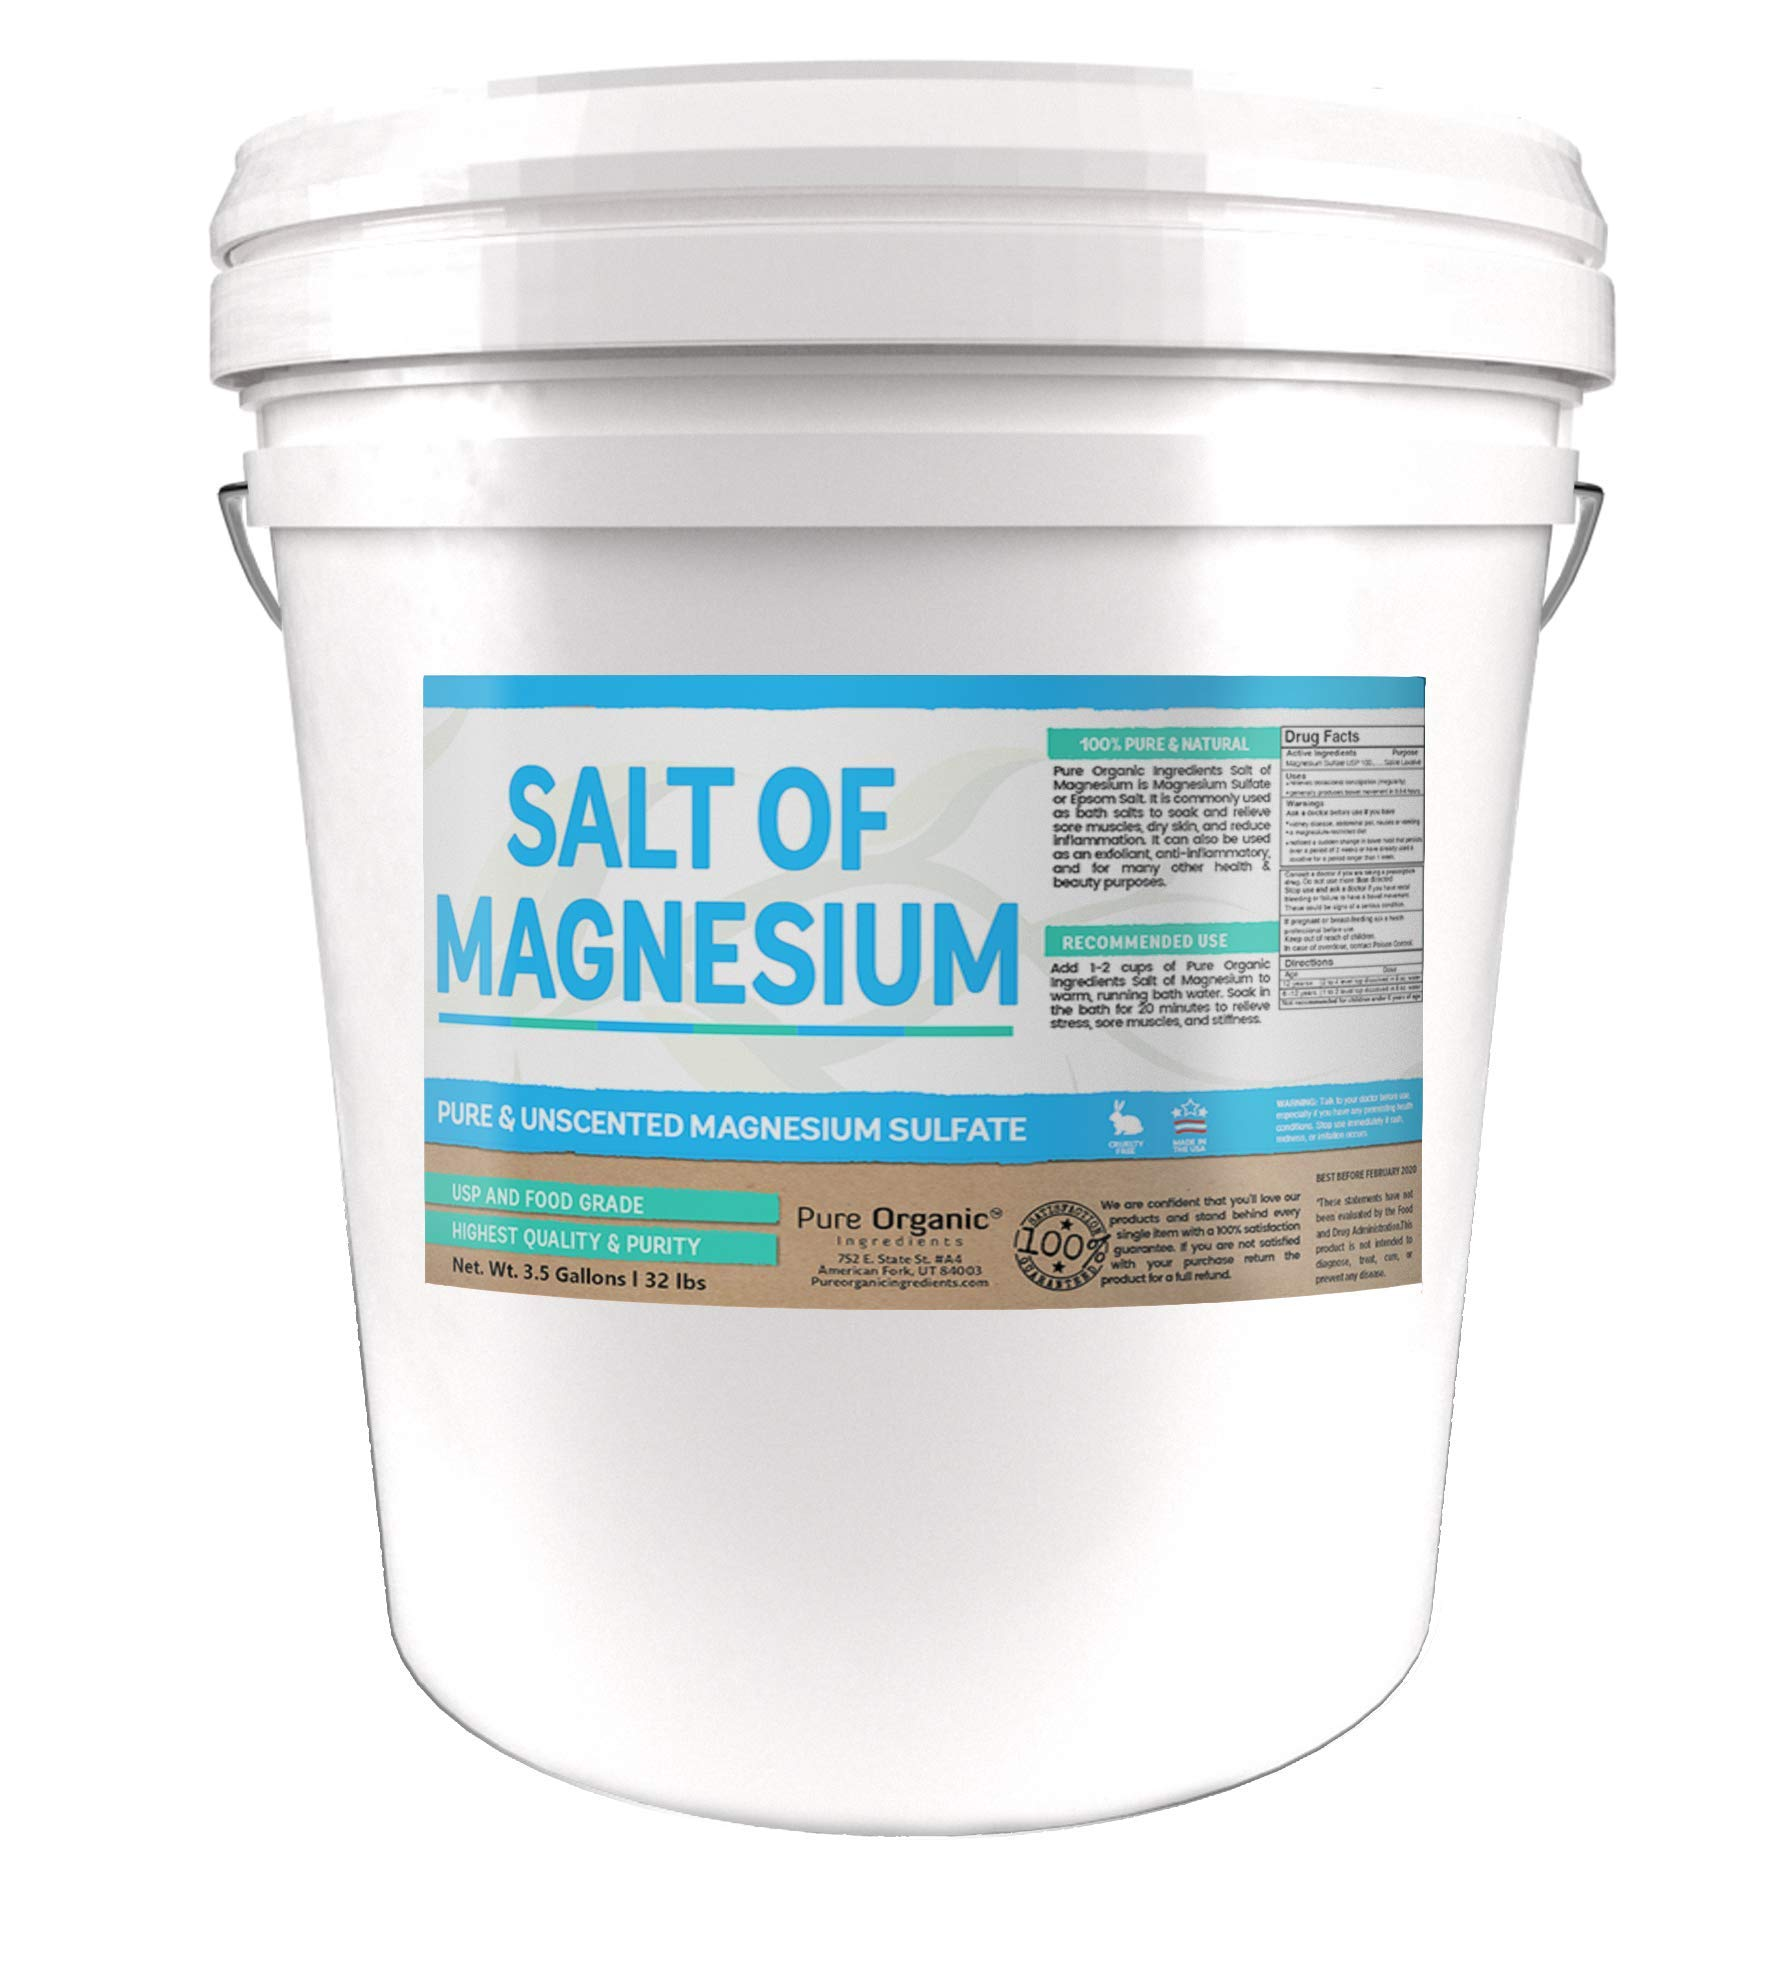 Salt of Magnesium: Pure Epsom Salt (3.5 Gallon Bucket, 32 lbs) by Pure Organic Ingredients, USP & Food Grade, Unscented, Soothes Sore Muscles, Natural Exfoliant, Anti-Inflammatory by Pure Organic Ingredients